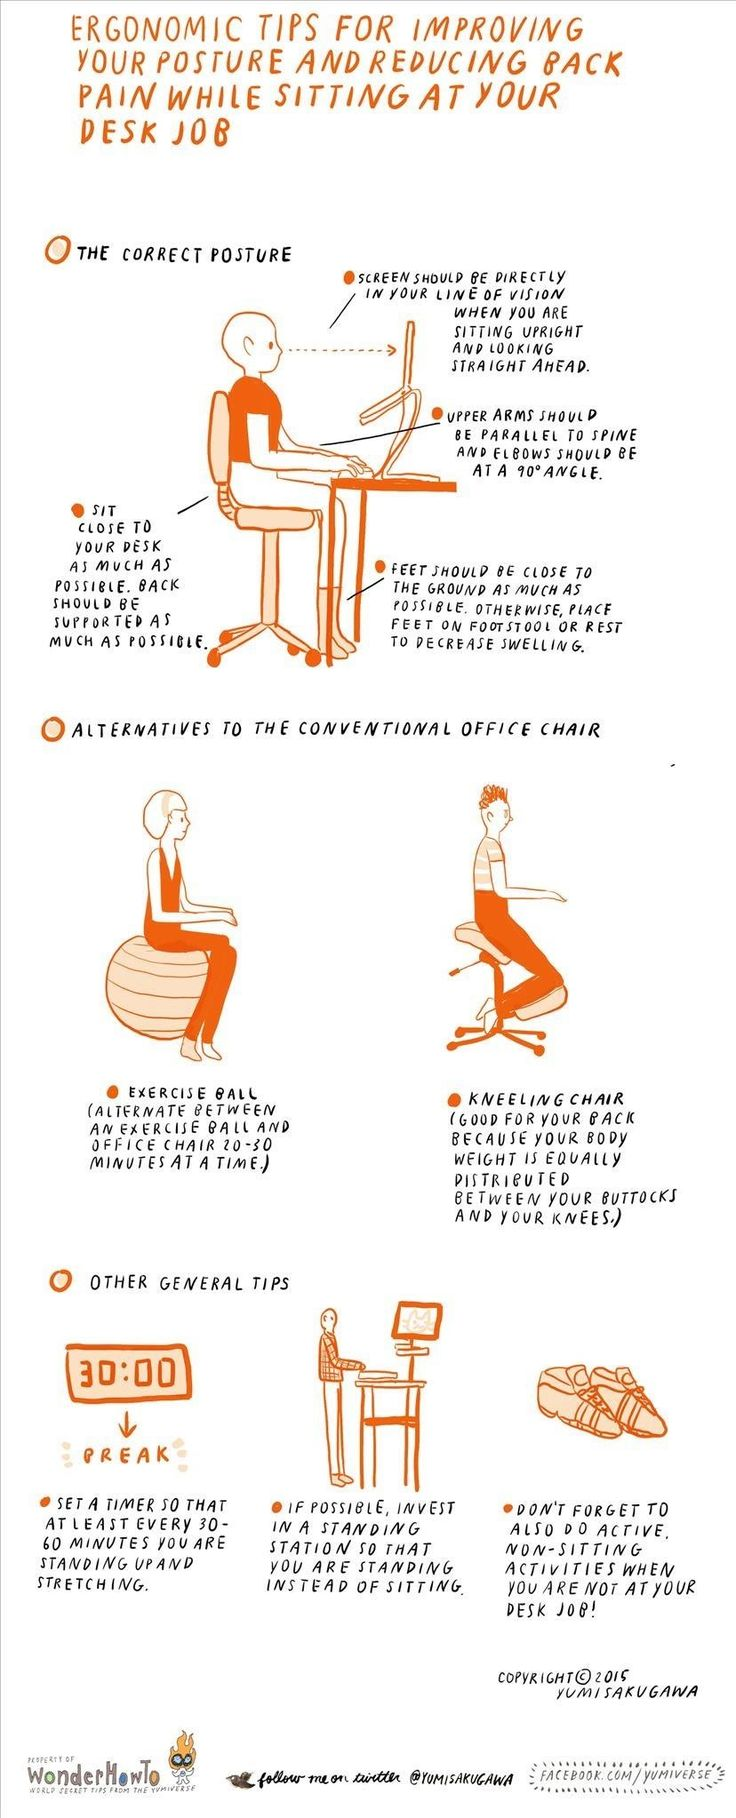 Best office chair for neck pain - Ergonomic Tips For Improving Posture Reducing Back Pain While Sitting All Day Long